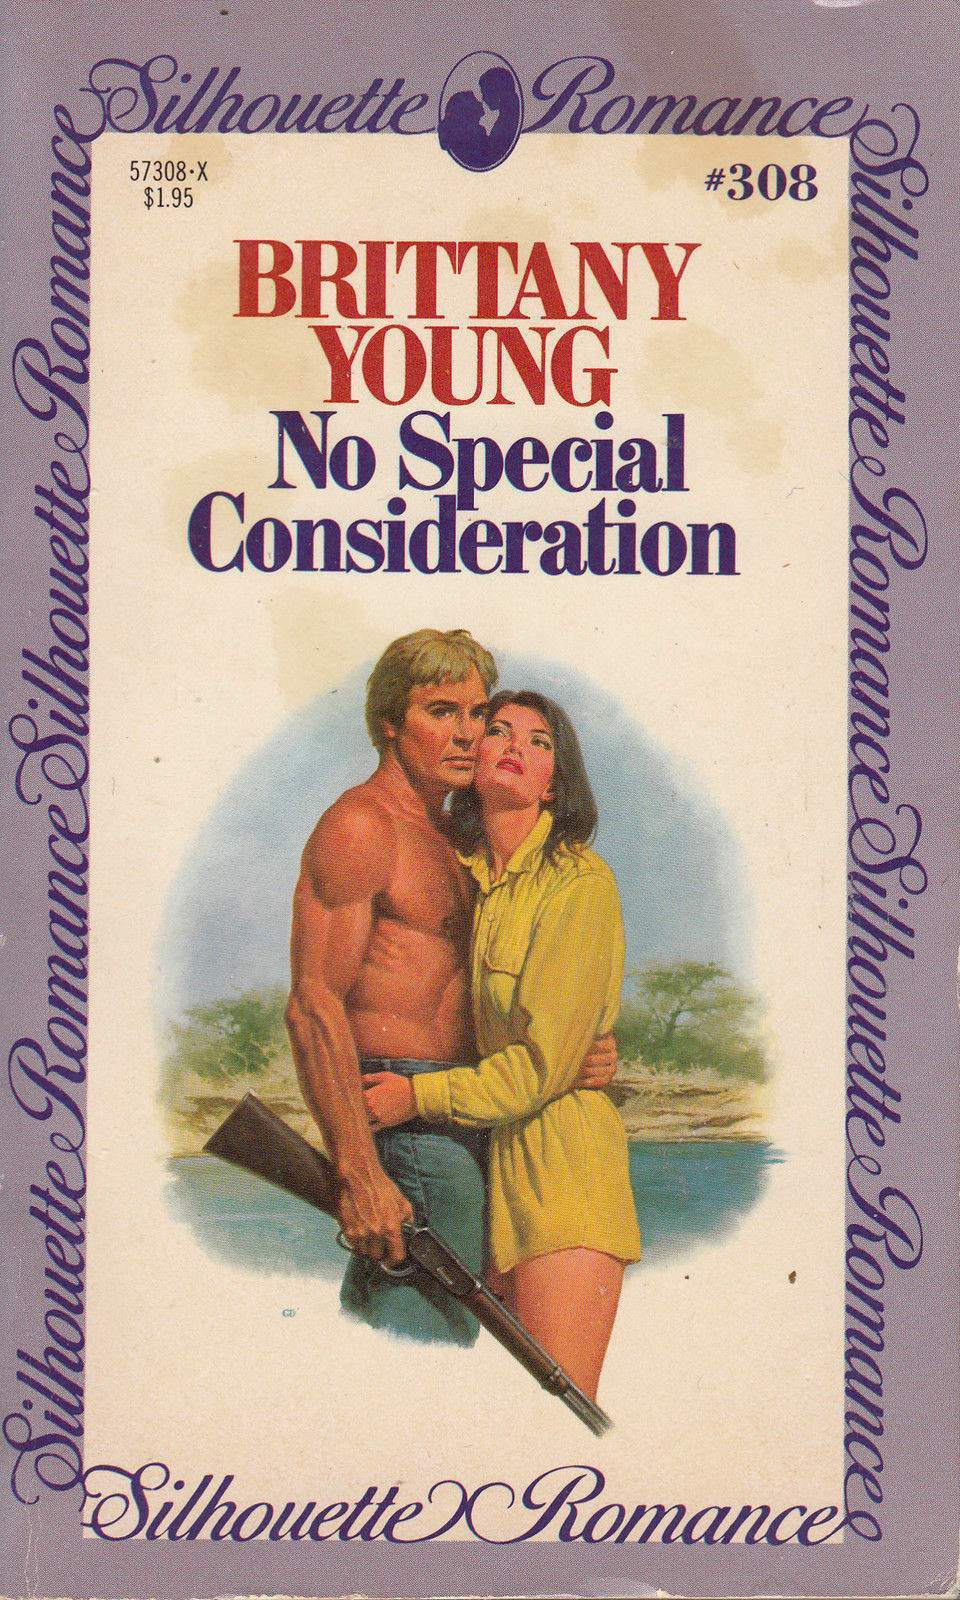 No Special Consideration - by Brittany Young - Silhouette Romance - # 308 - 1984